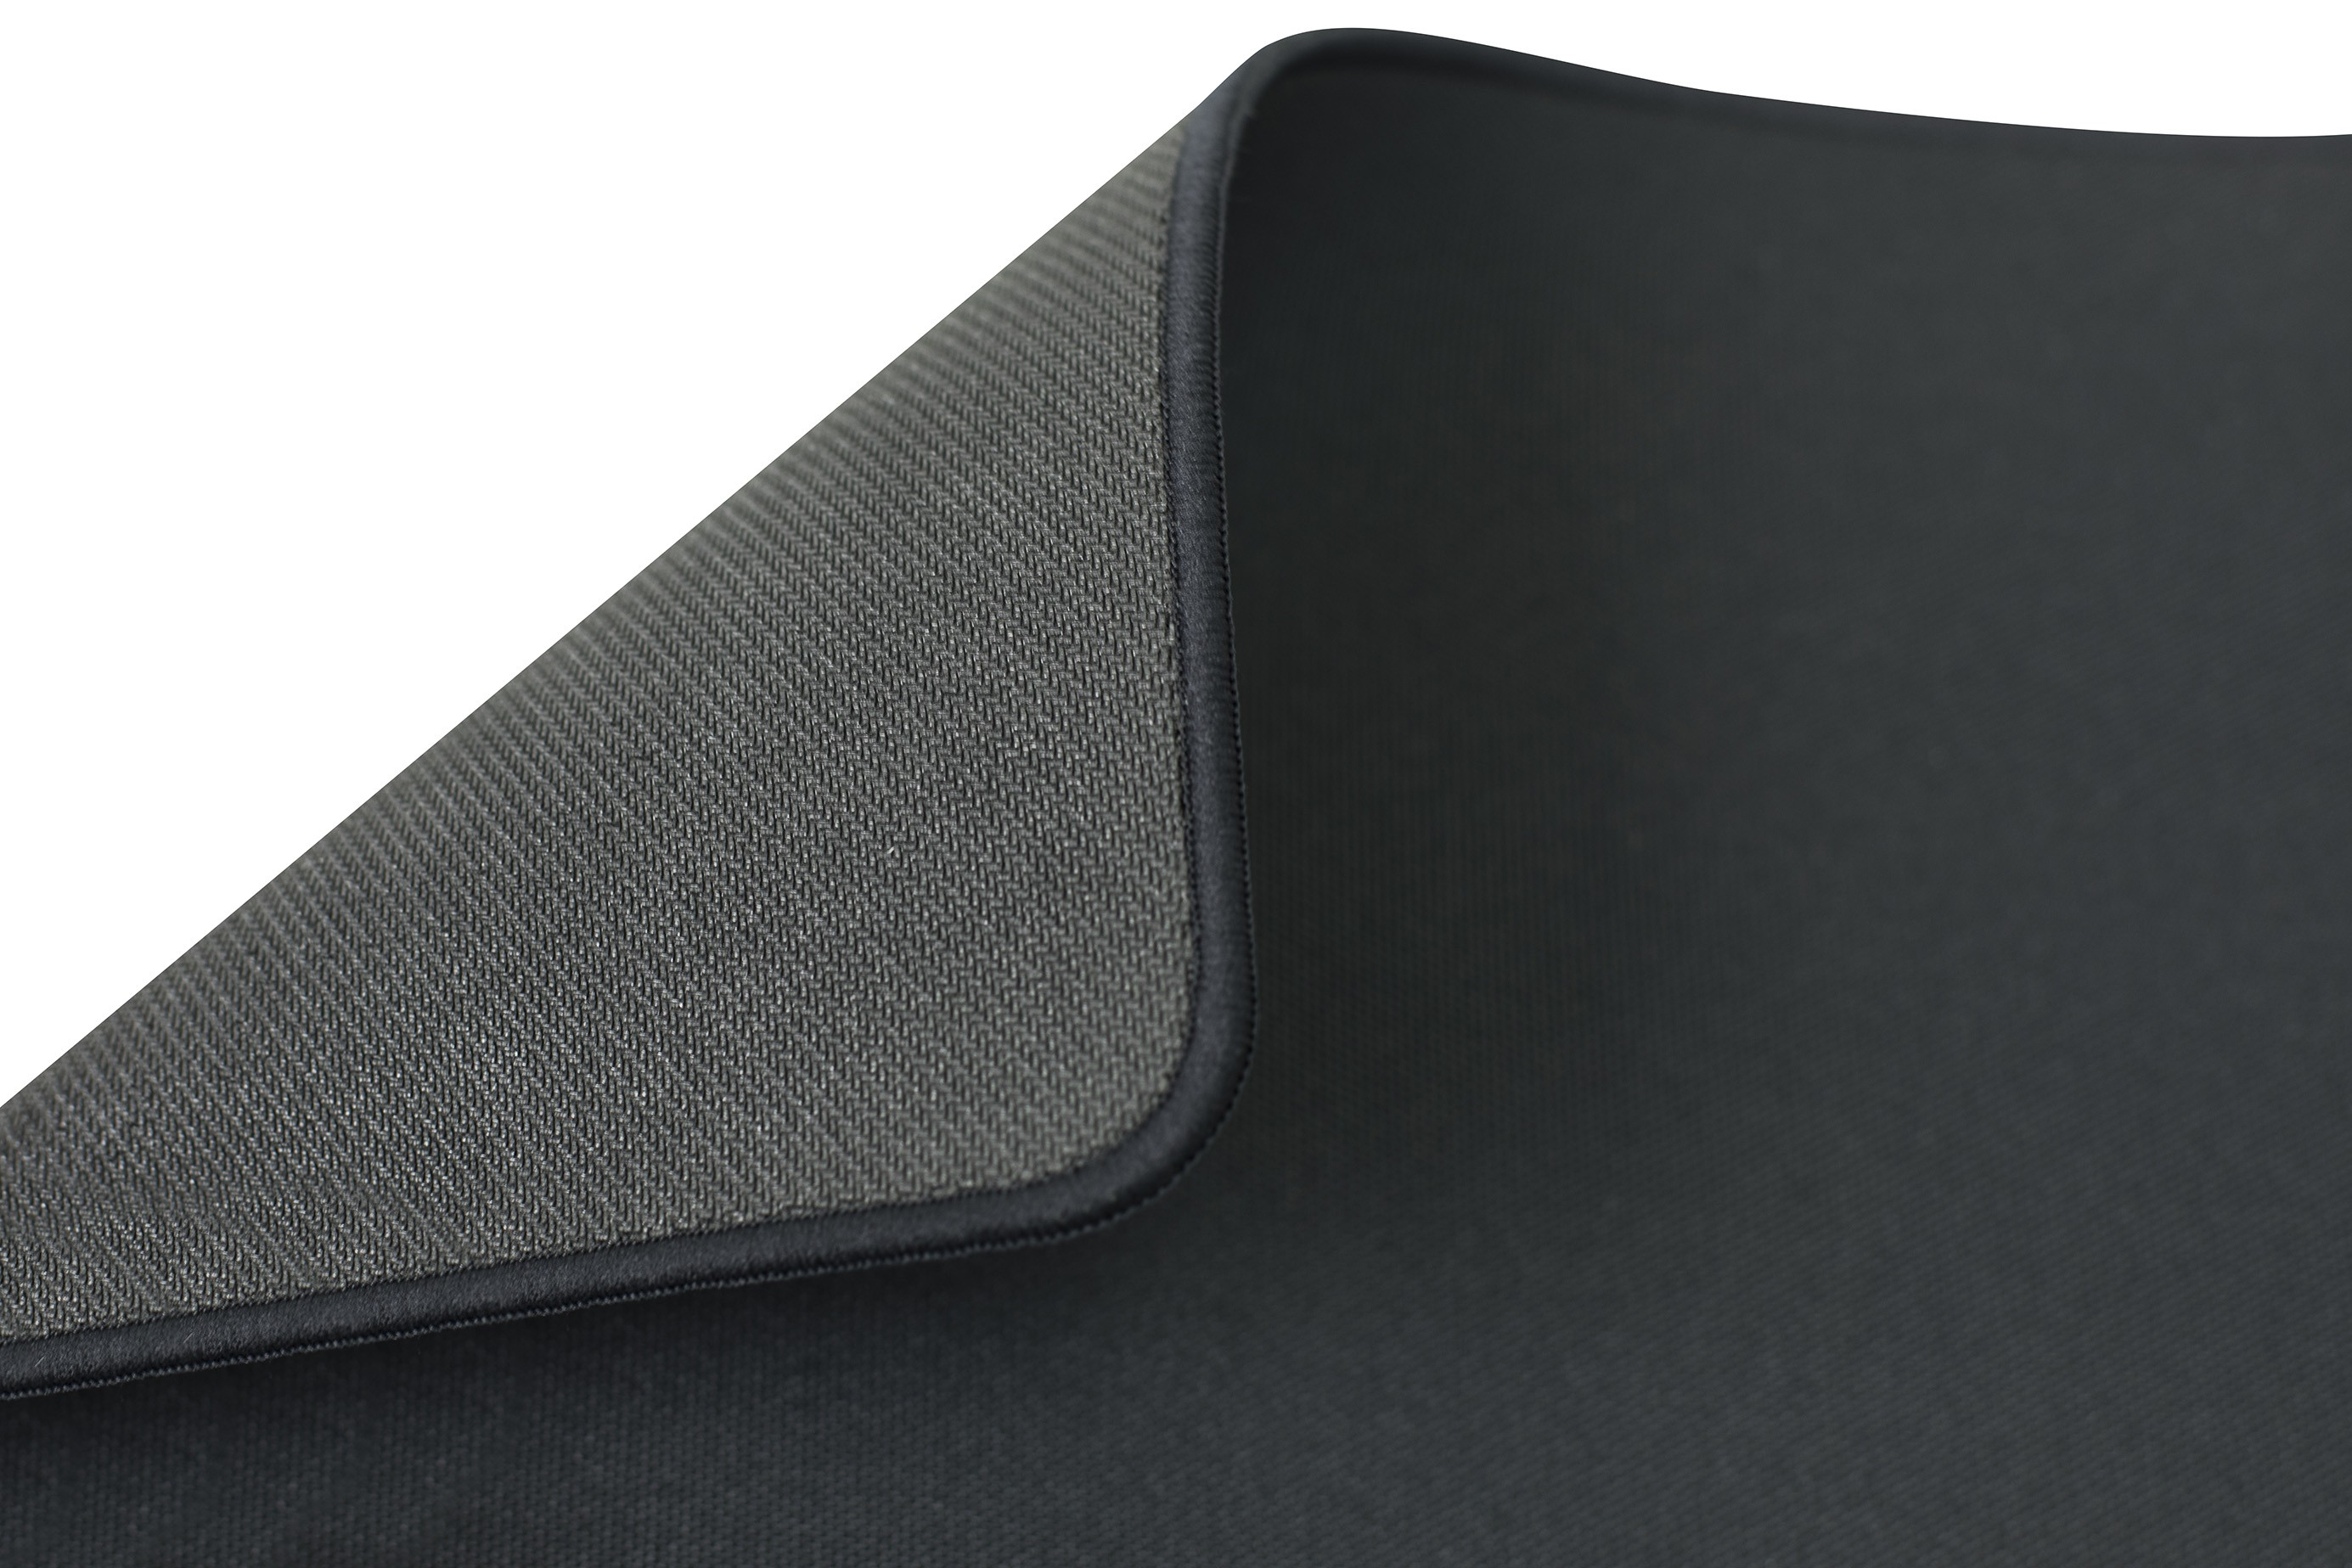 COOLER MASTER MASTERACCESSORY MP510 M MOUSE PAD 320X270MM